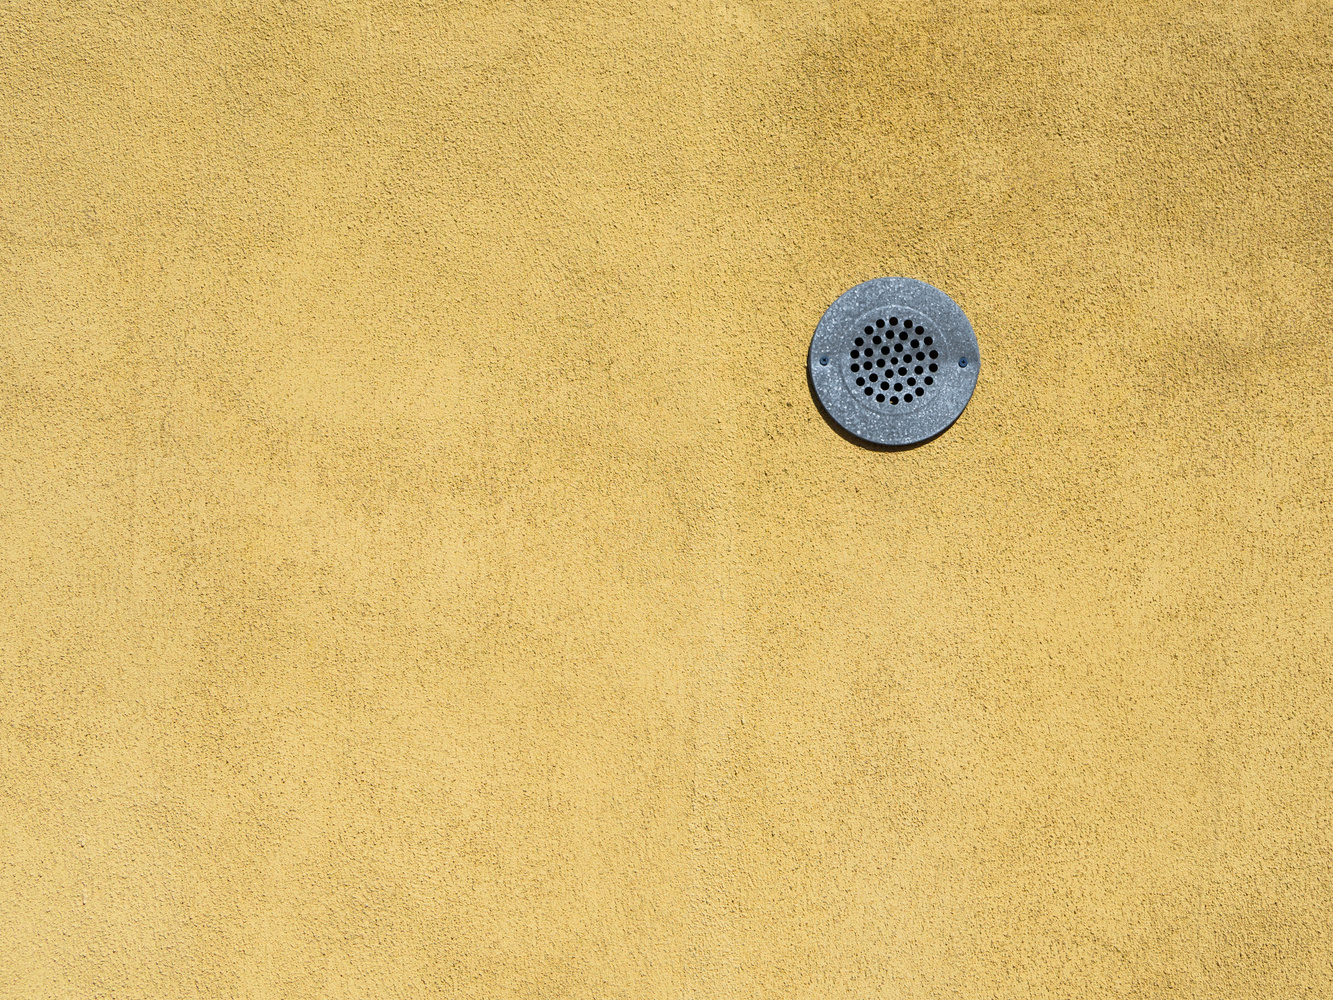 Lonely drain on the wall by Ryan Giglio